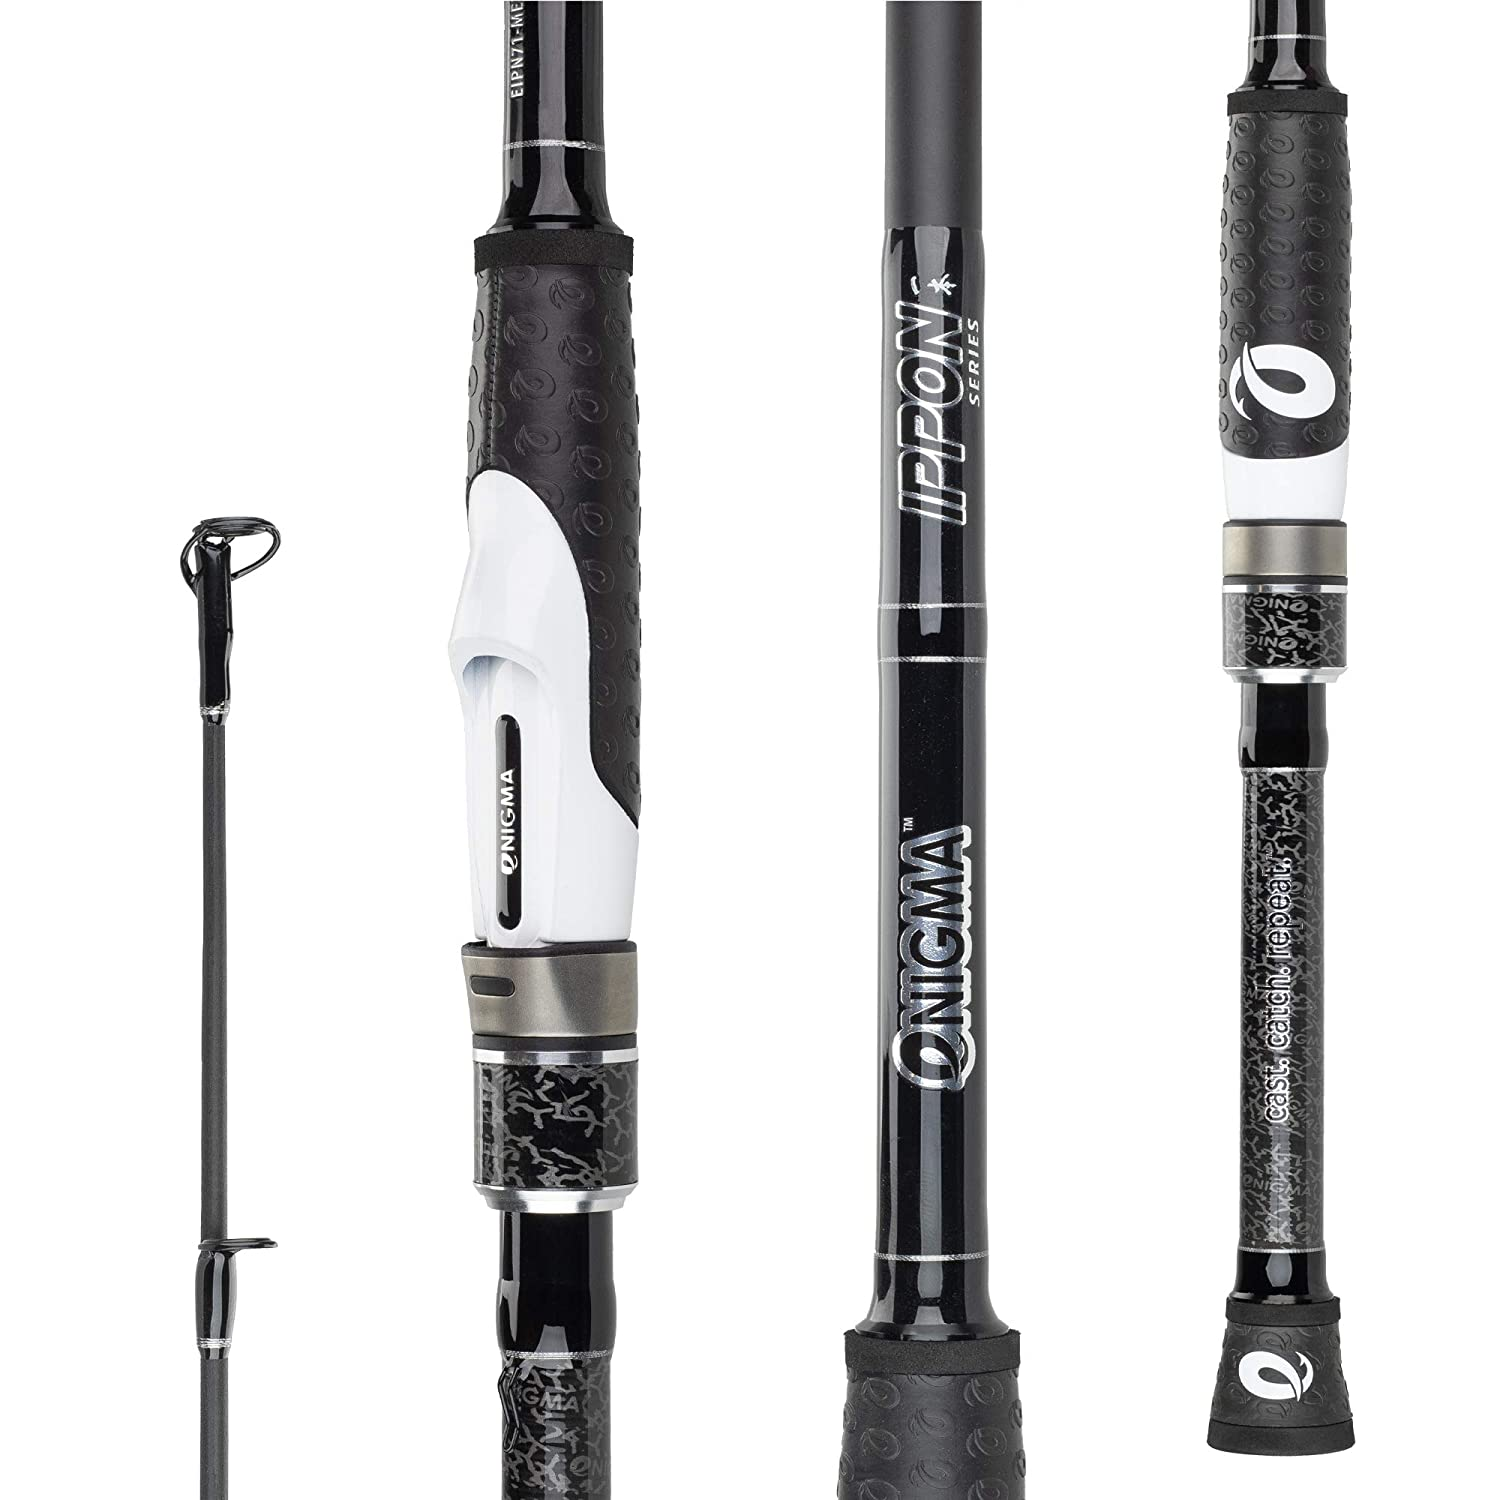 Enigma Fishing Equipment Accessories Phenom IPPON Series Fishing Pole – Spinning Rod Premium Fishing Rod with Custom E-Grip Handle